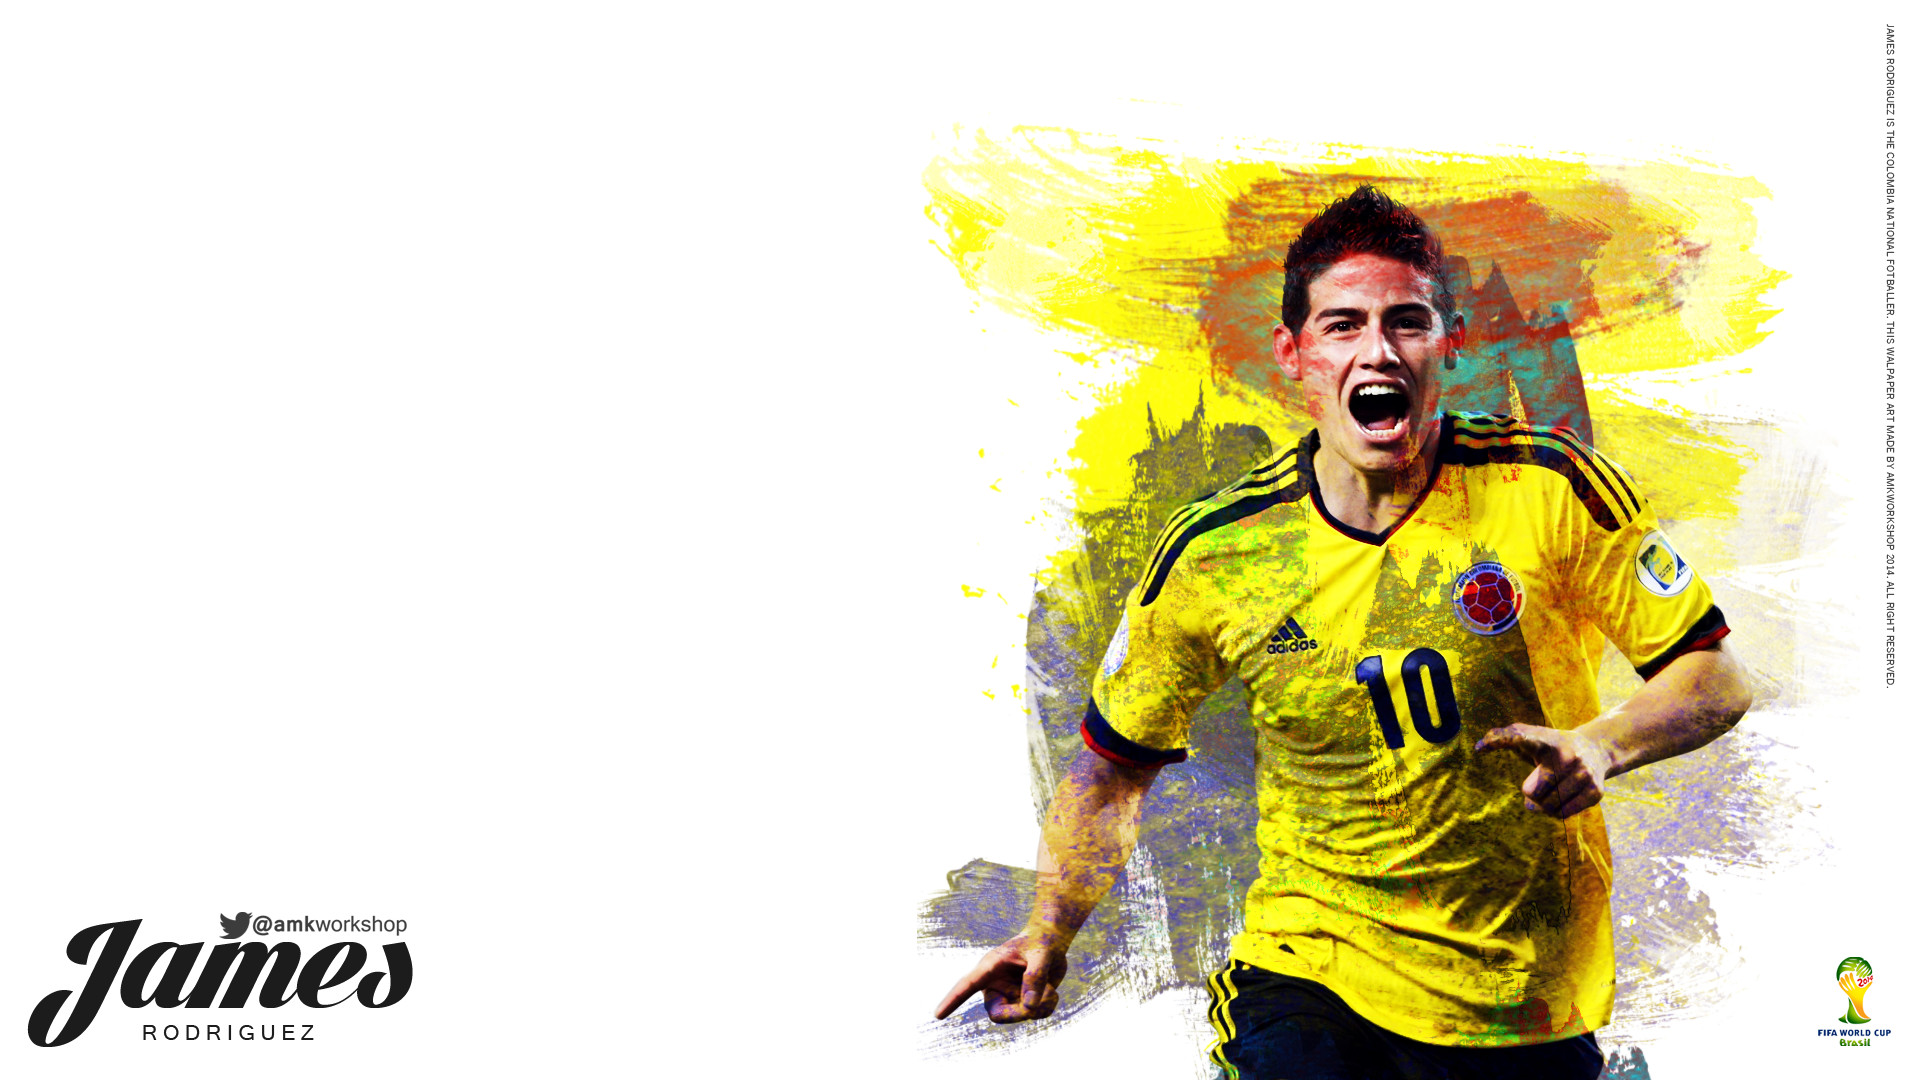 James rodriguez wallpapers 63 images - James rodriguez wallpaper hd ...